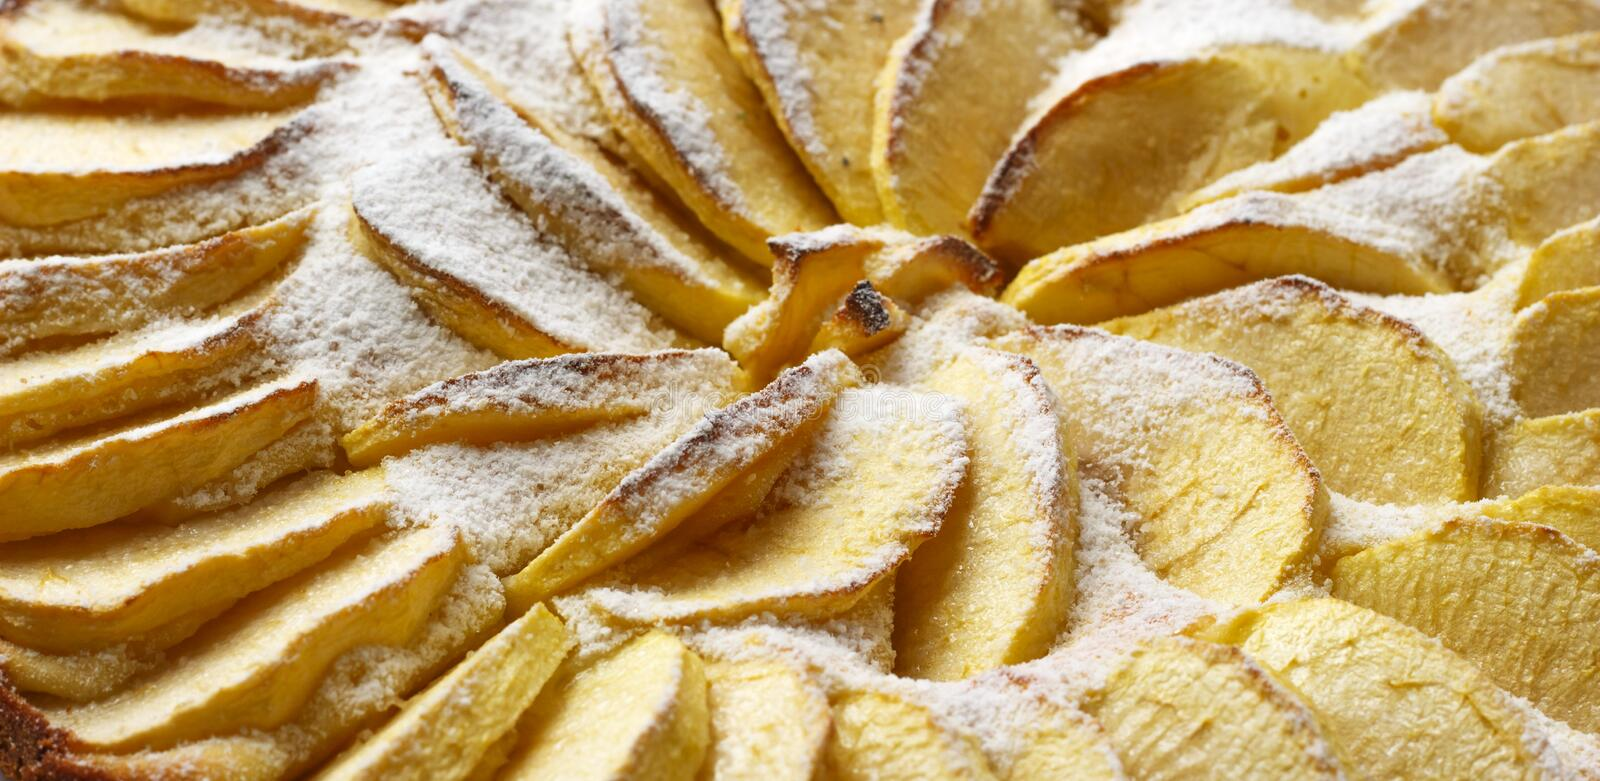 Homemade apple pie dusted with icing sugar on a white background royalty free stock photos